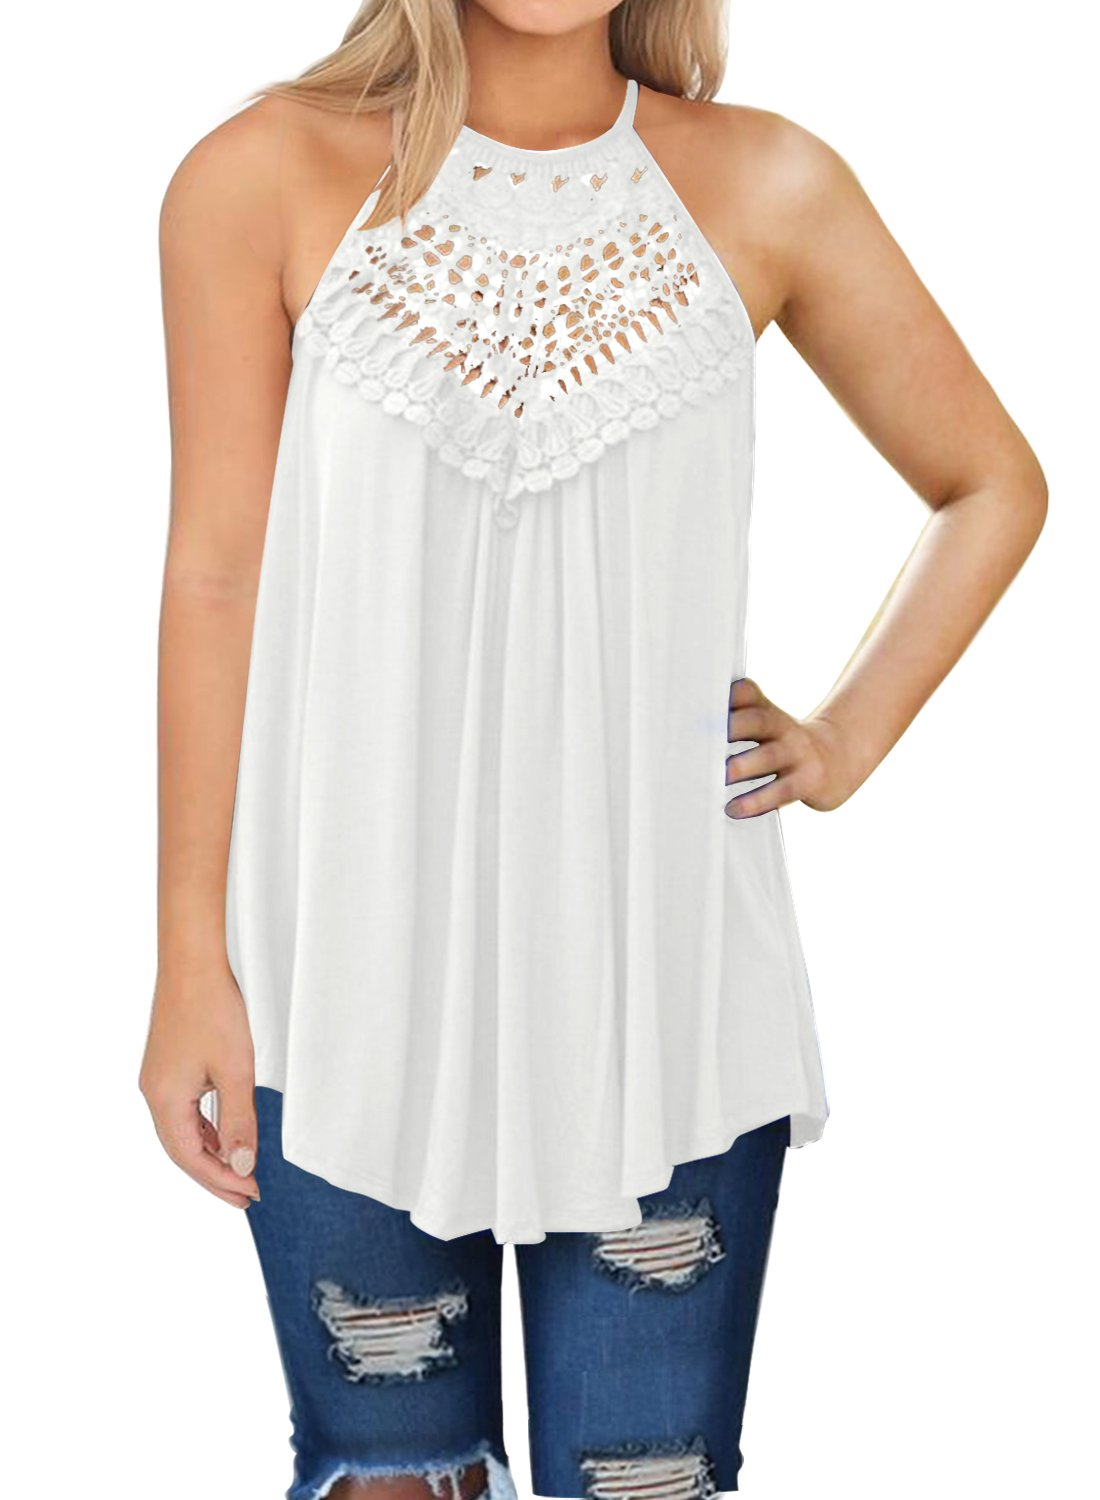 MIHOLL Women's Sleeveless Shirts Summer Tops Lace Casual Tank Tops (White, Medium)